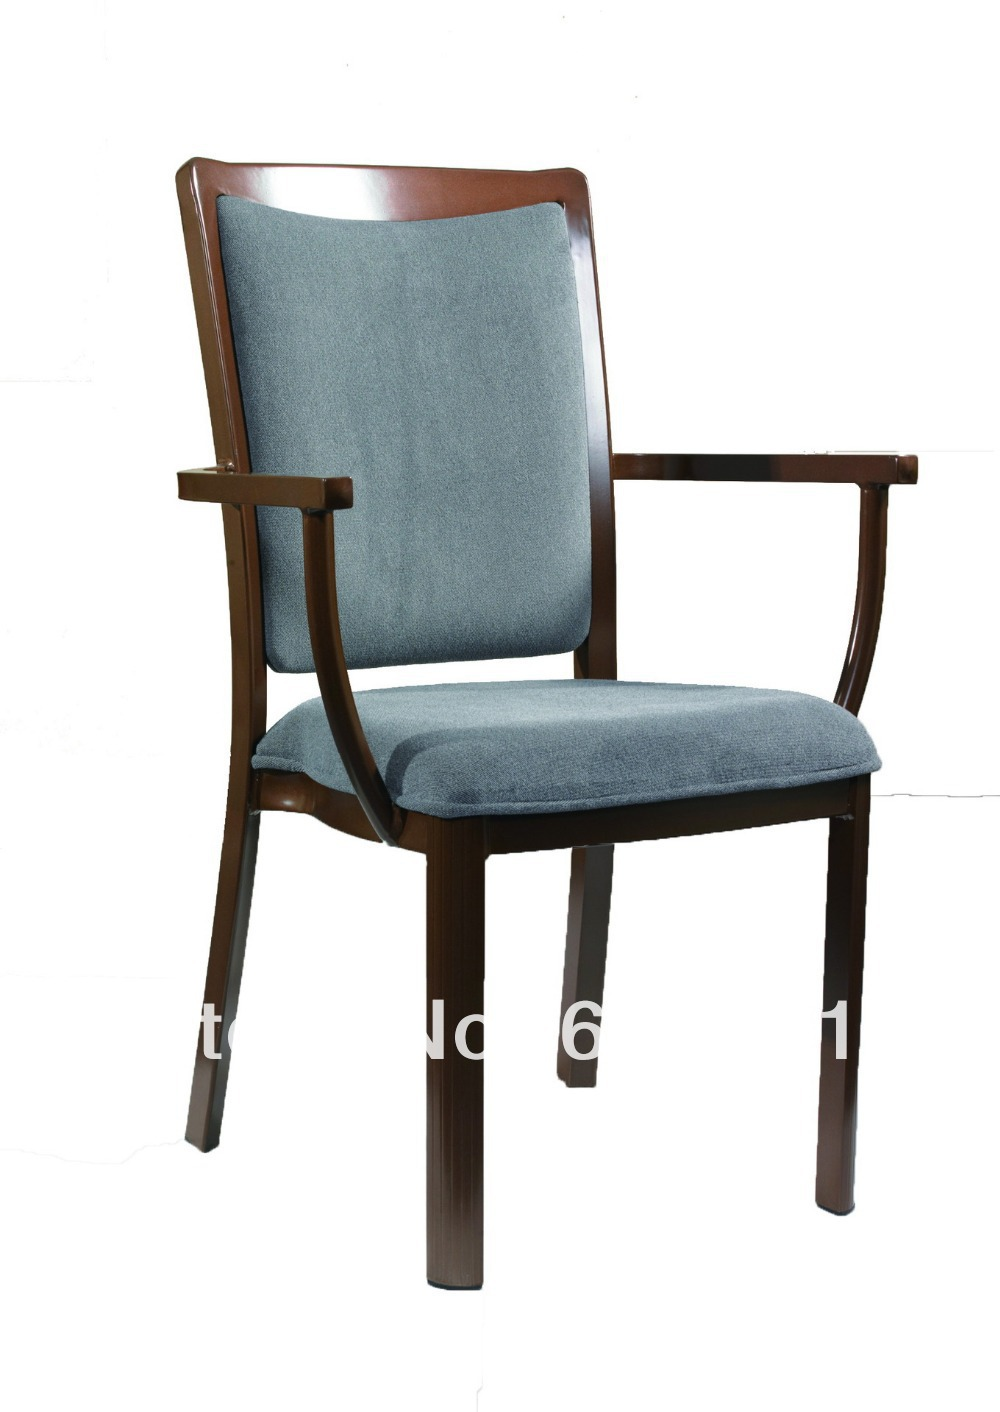 Stackable Wood Imitation Aluminum Banquet Armchair,heavy Duty Fabric With High Rub Resistance,comfortable